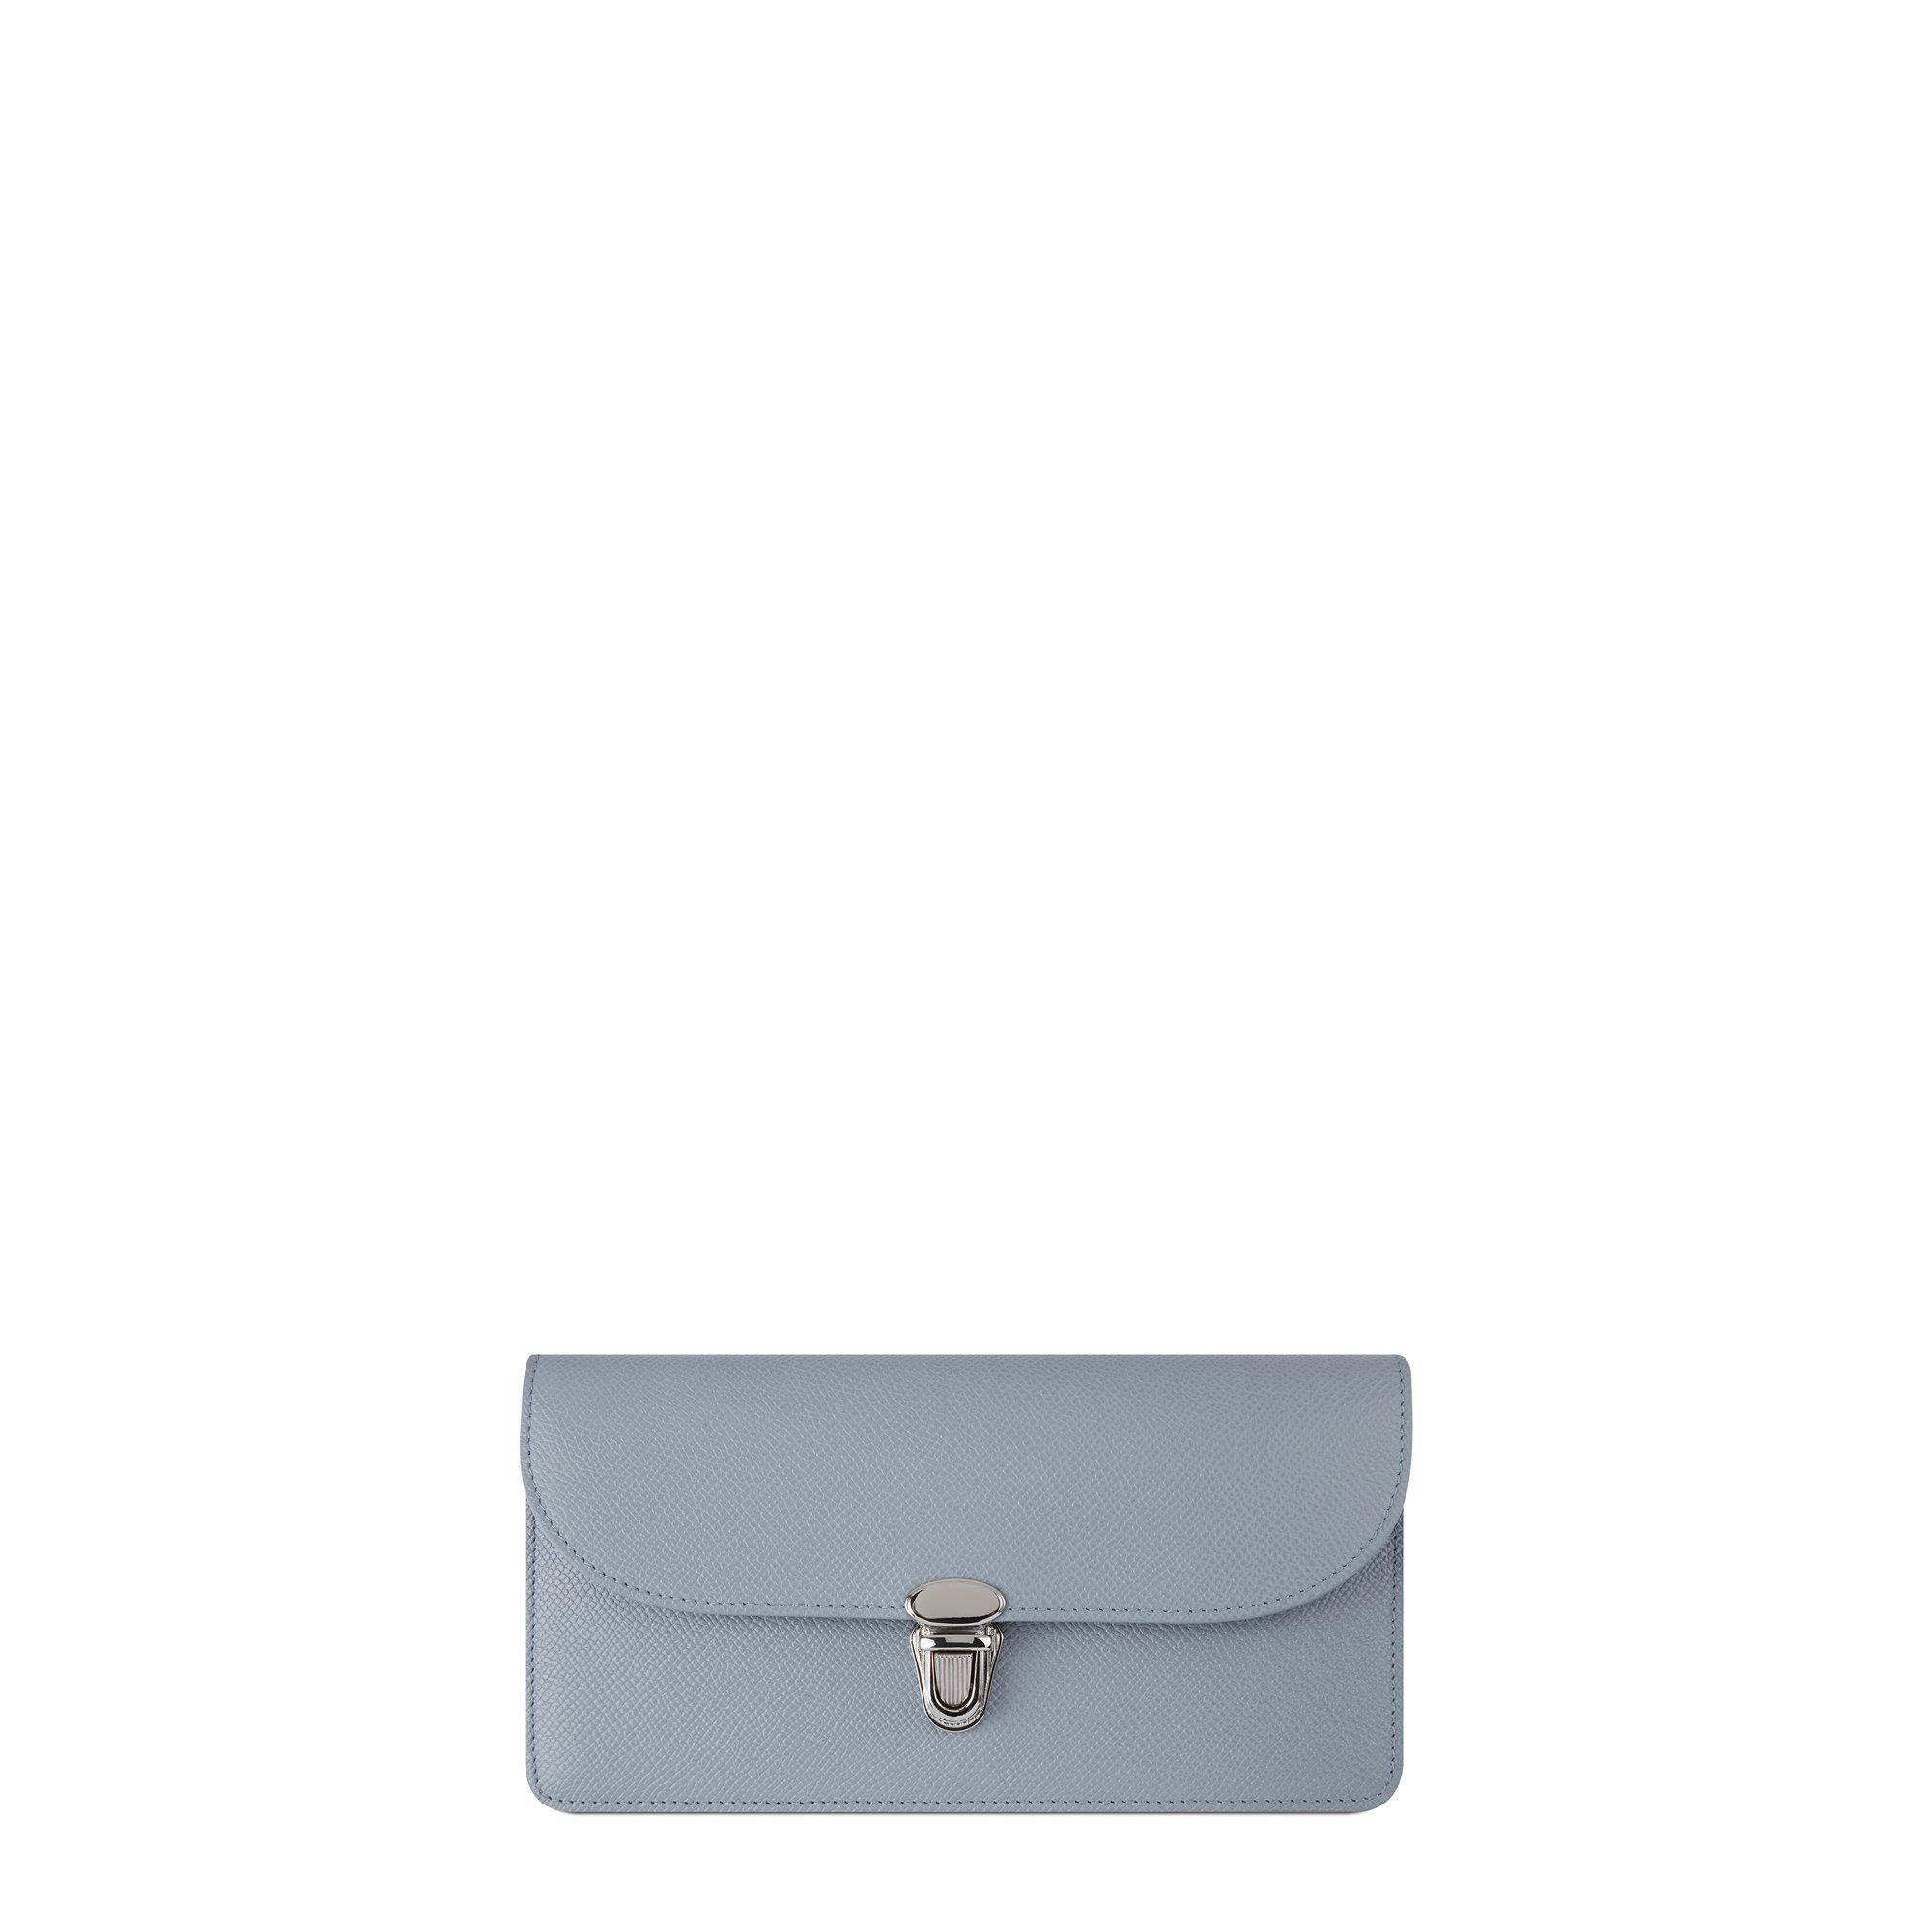 New Saffiano Push Lock Purse with card slots in Leather - French Grey Saffiano